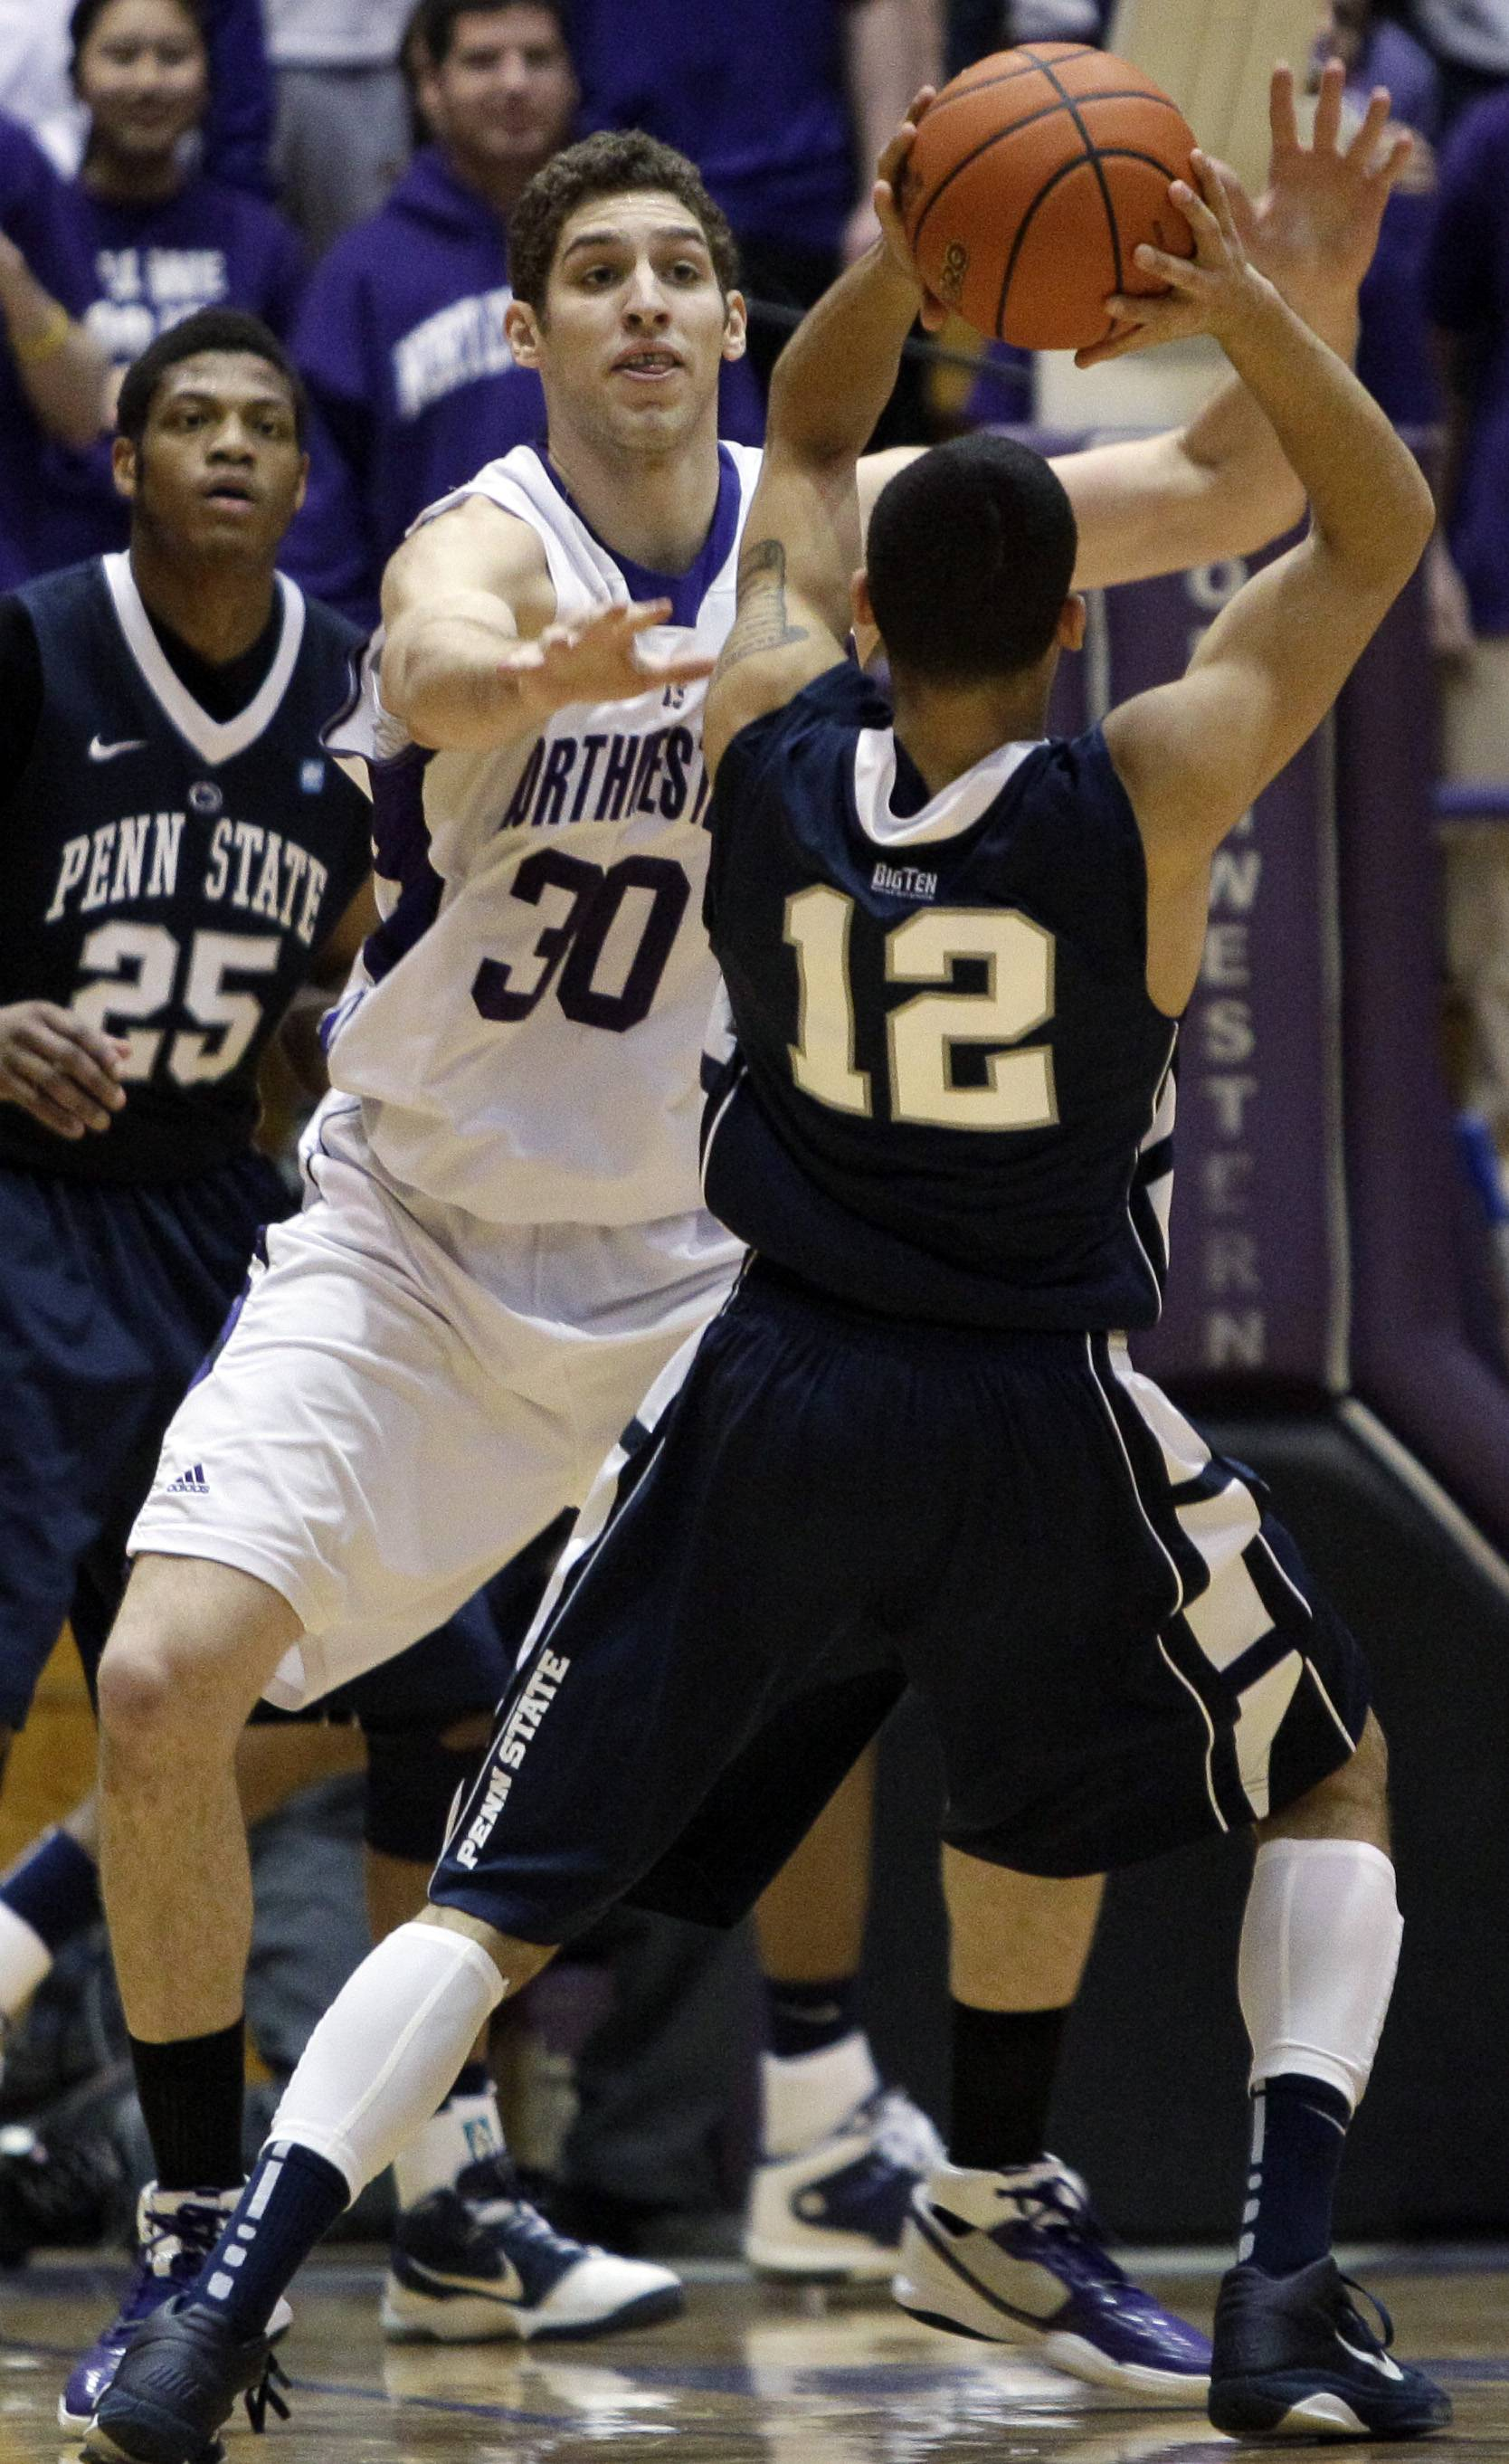 Northwestern's Davide Curletti guards Penn State's Talor Battle during the first half.